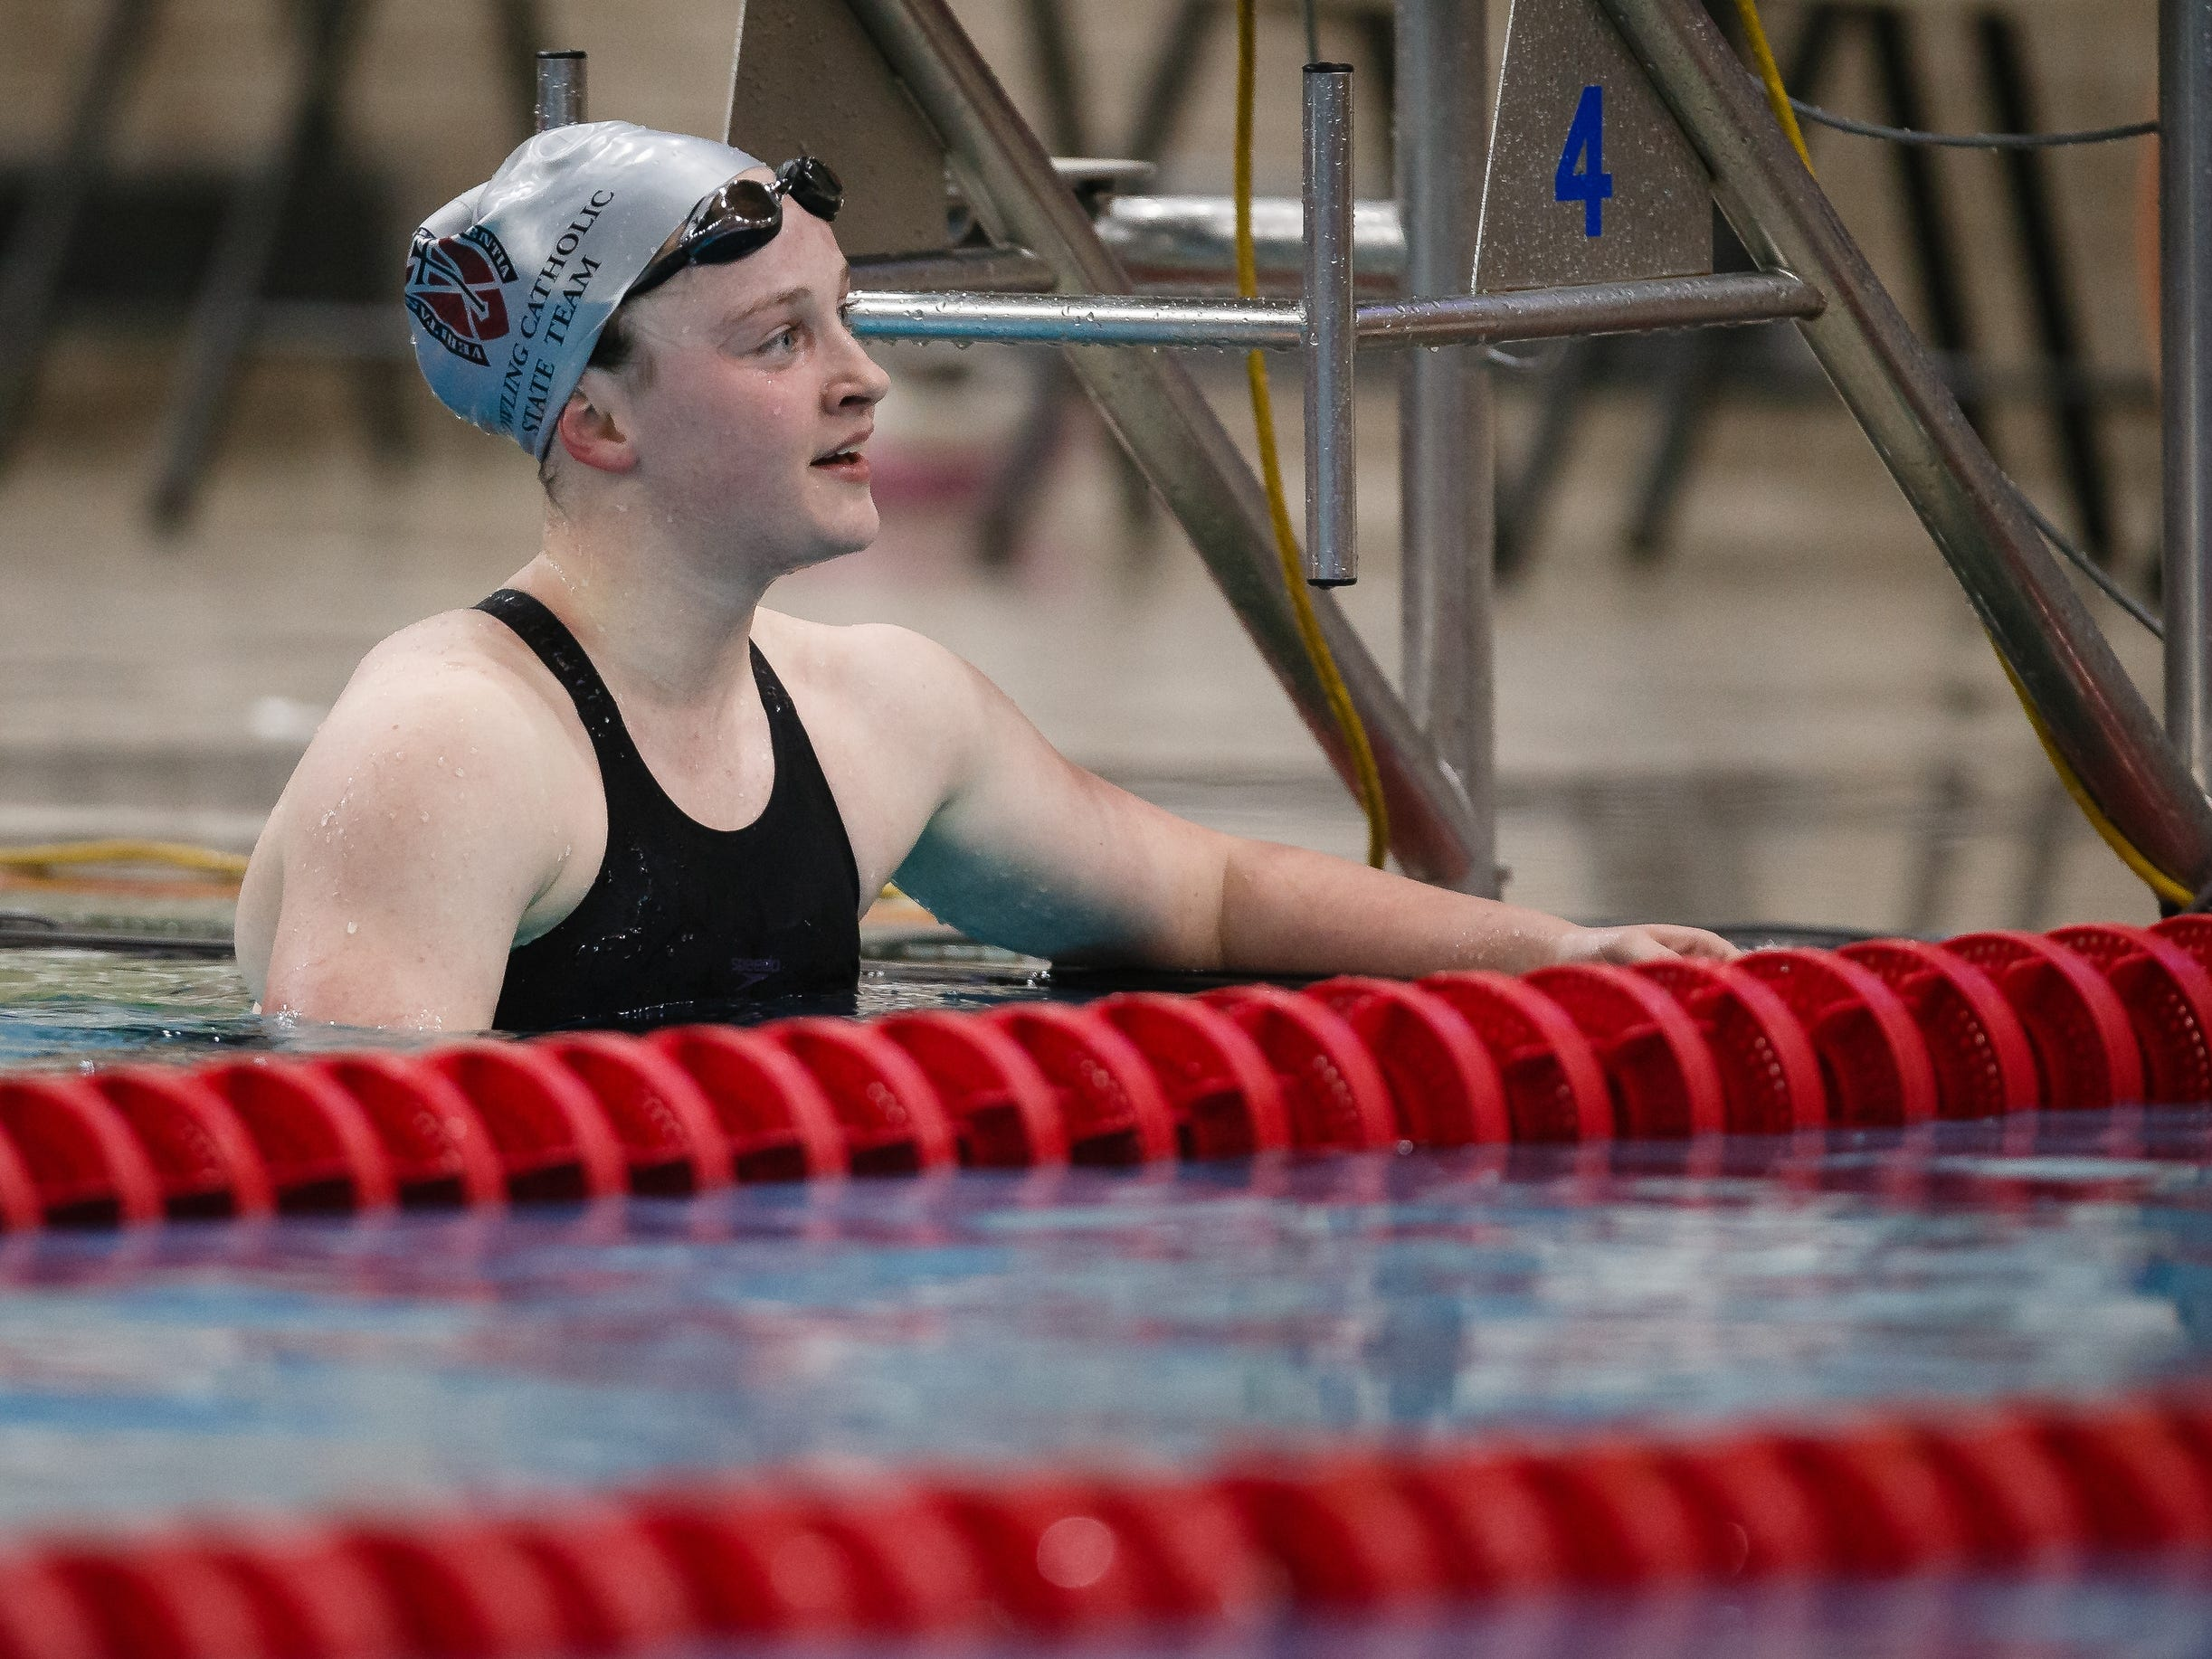 Dowling Catholic's Berit Quass looks up at the clock after the 500 yard freestyle at the Iowa girls state swimming meet on Saturday, Nov. 3, 2018, in Marshalltown.